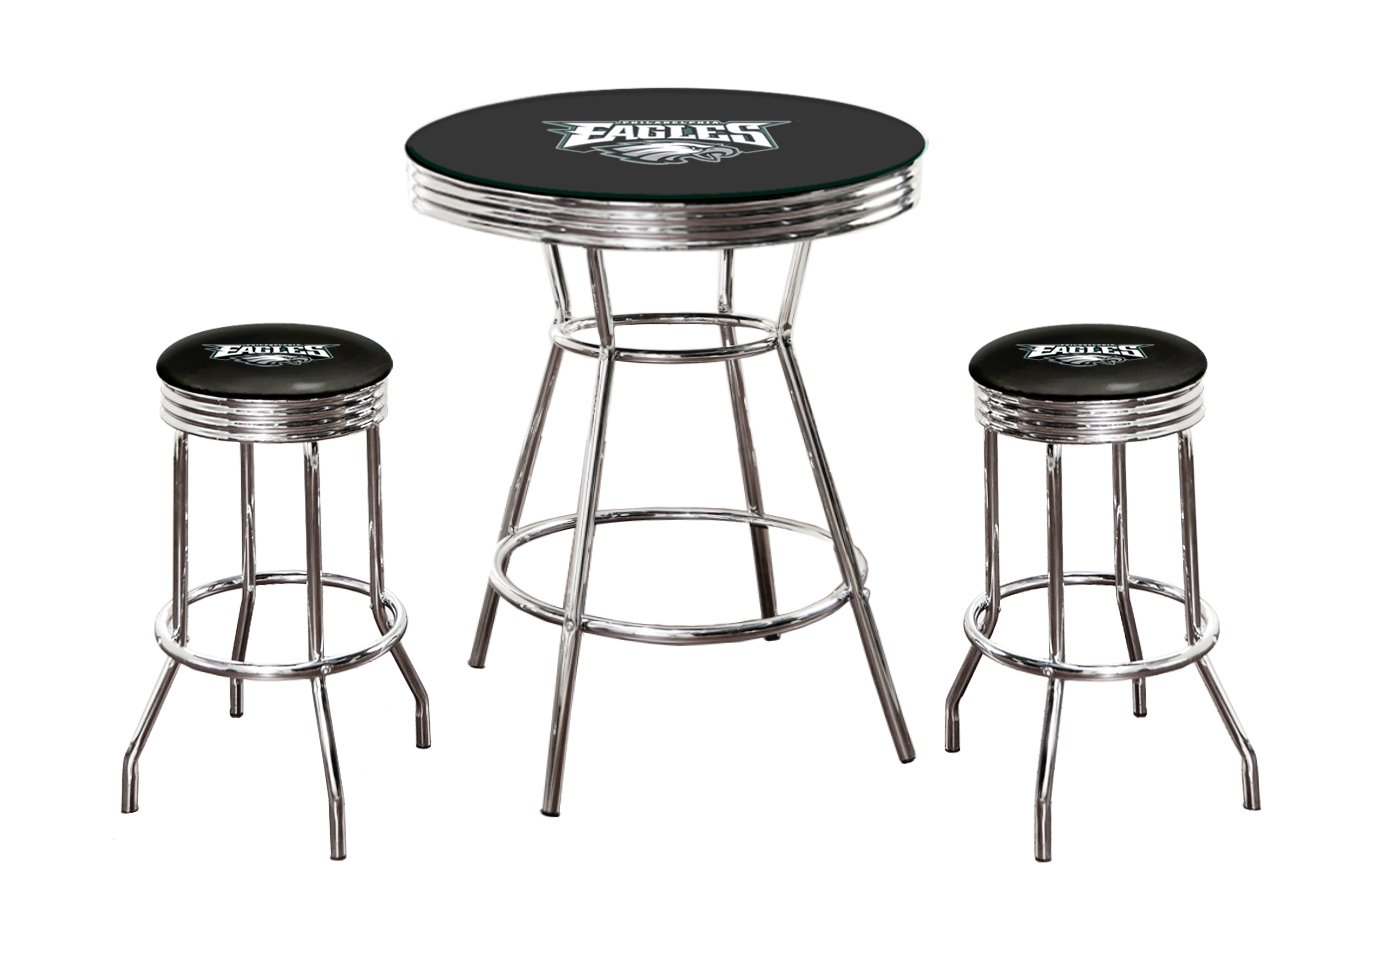 """Black Pub/Bar Table with a Glass Table Top and 2 – 29"""" Swivel Stools All Featuring Your Favorite Football Team Logo (Eagles)"""